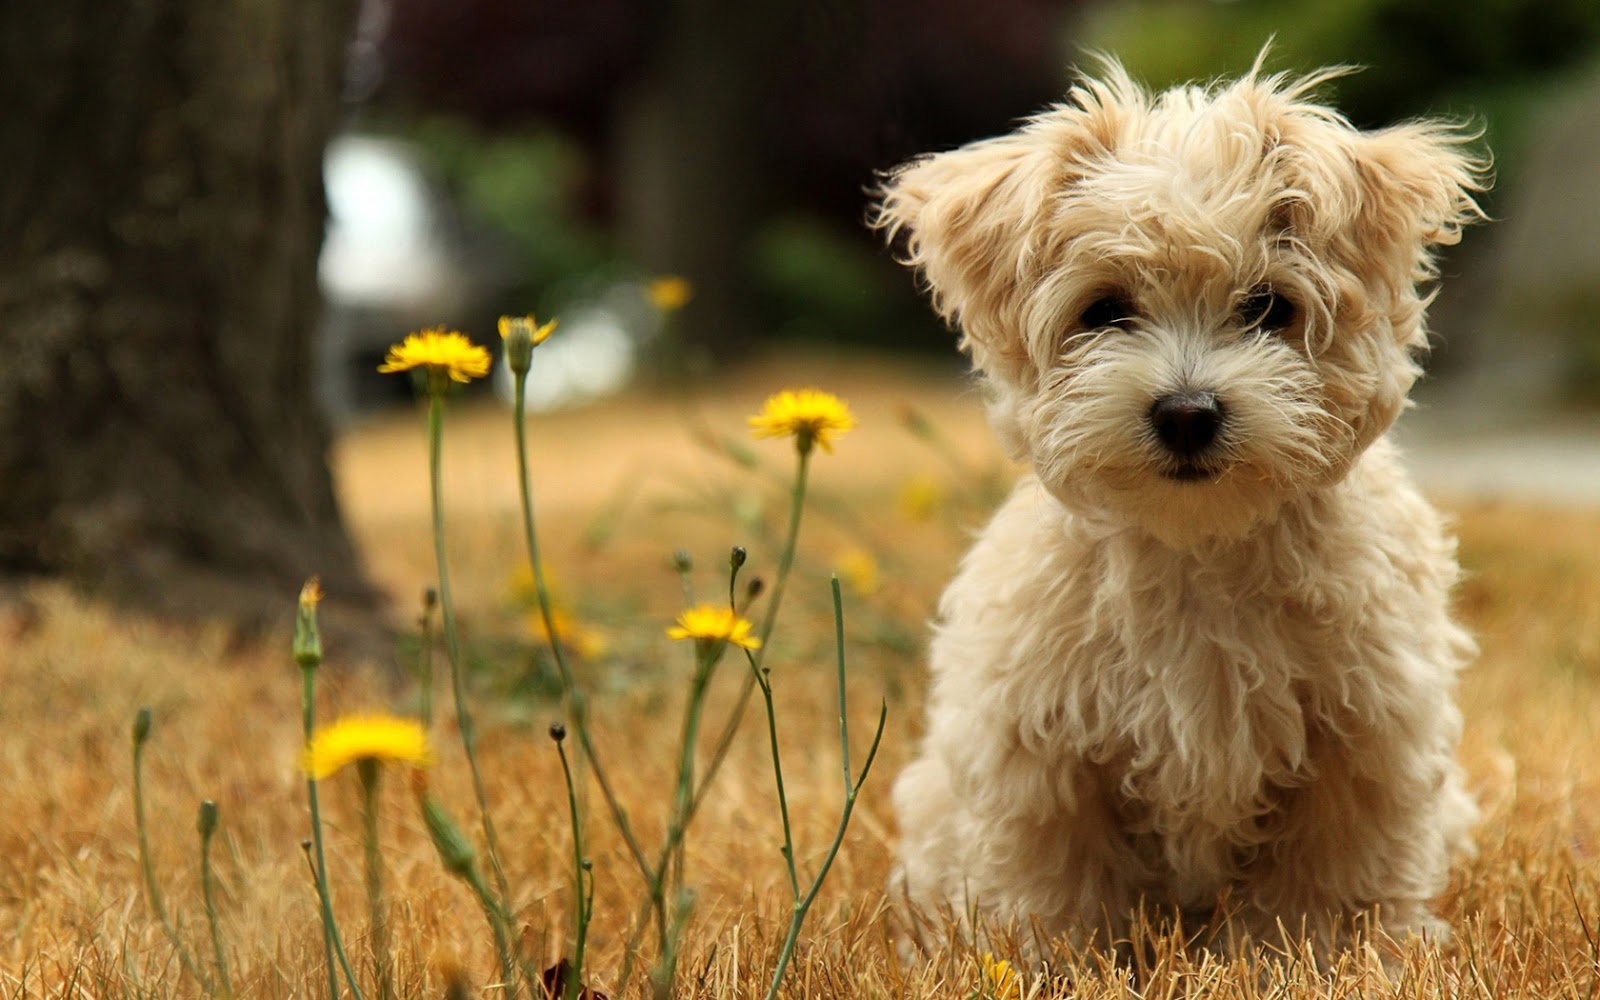 Cute Puppies HD Wallpapers – wallpaper202